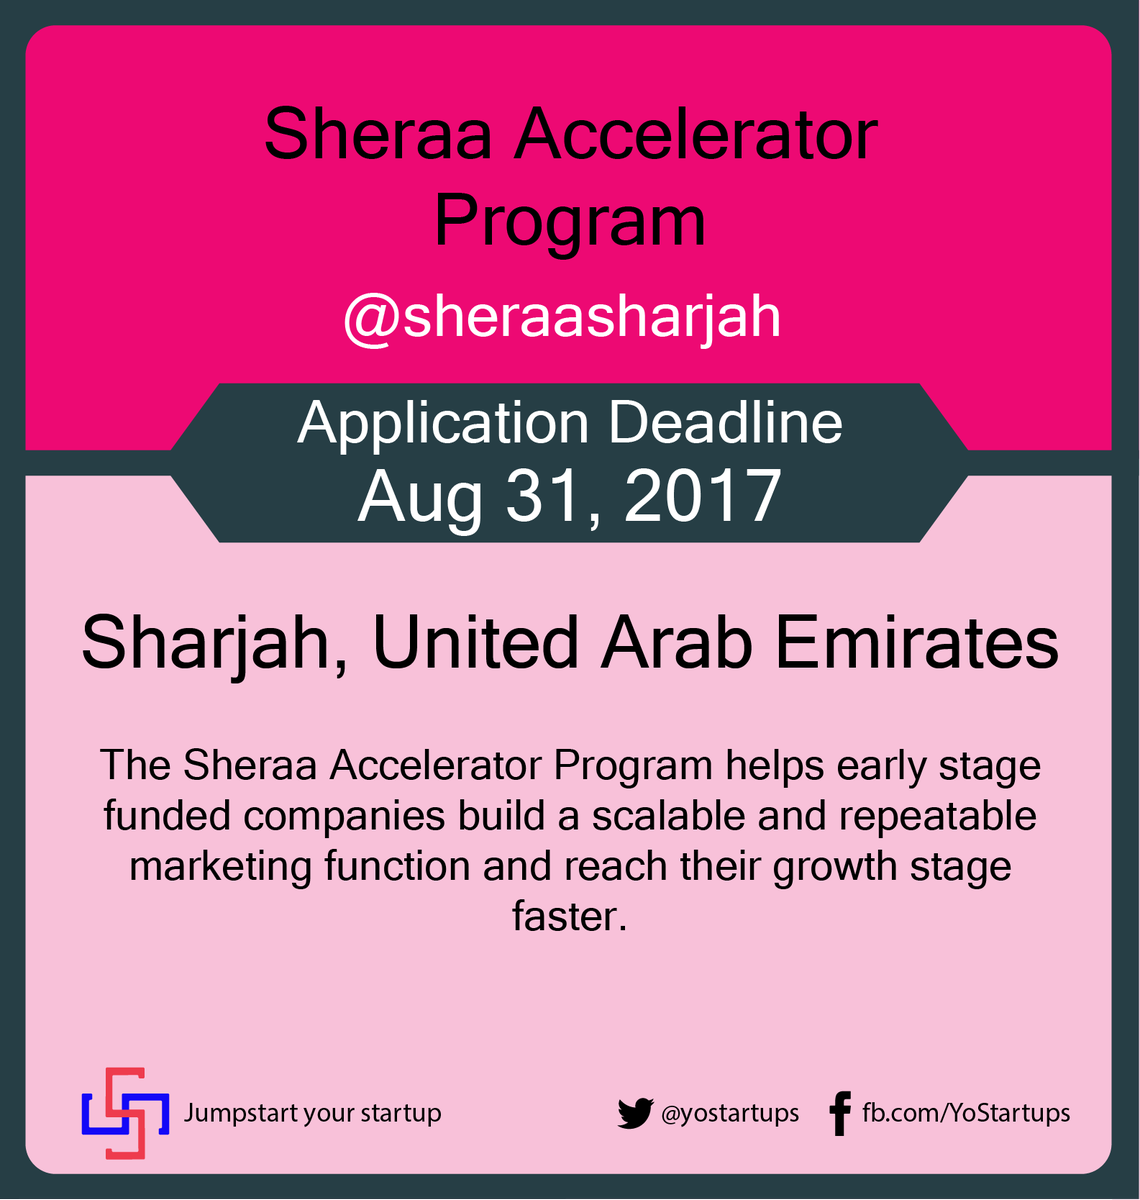 Checkout @sheraasharjah help to build a scalable and repeatable marketing function #accelerator #yostartups  https:// goo.gl/S1uqi5  &nbsp;  <br>http://pic.twitter.com/f0LEG6AIqR